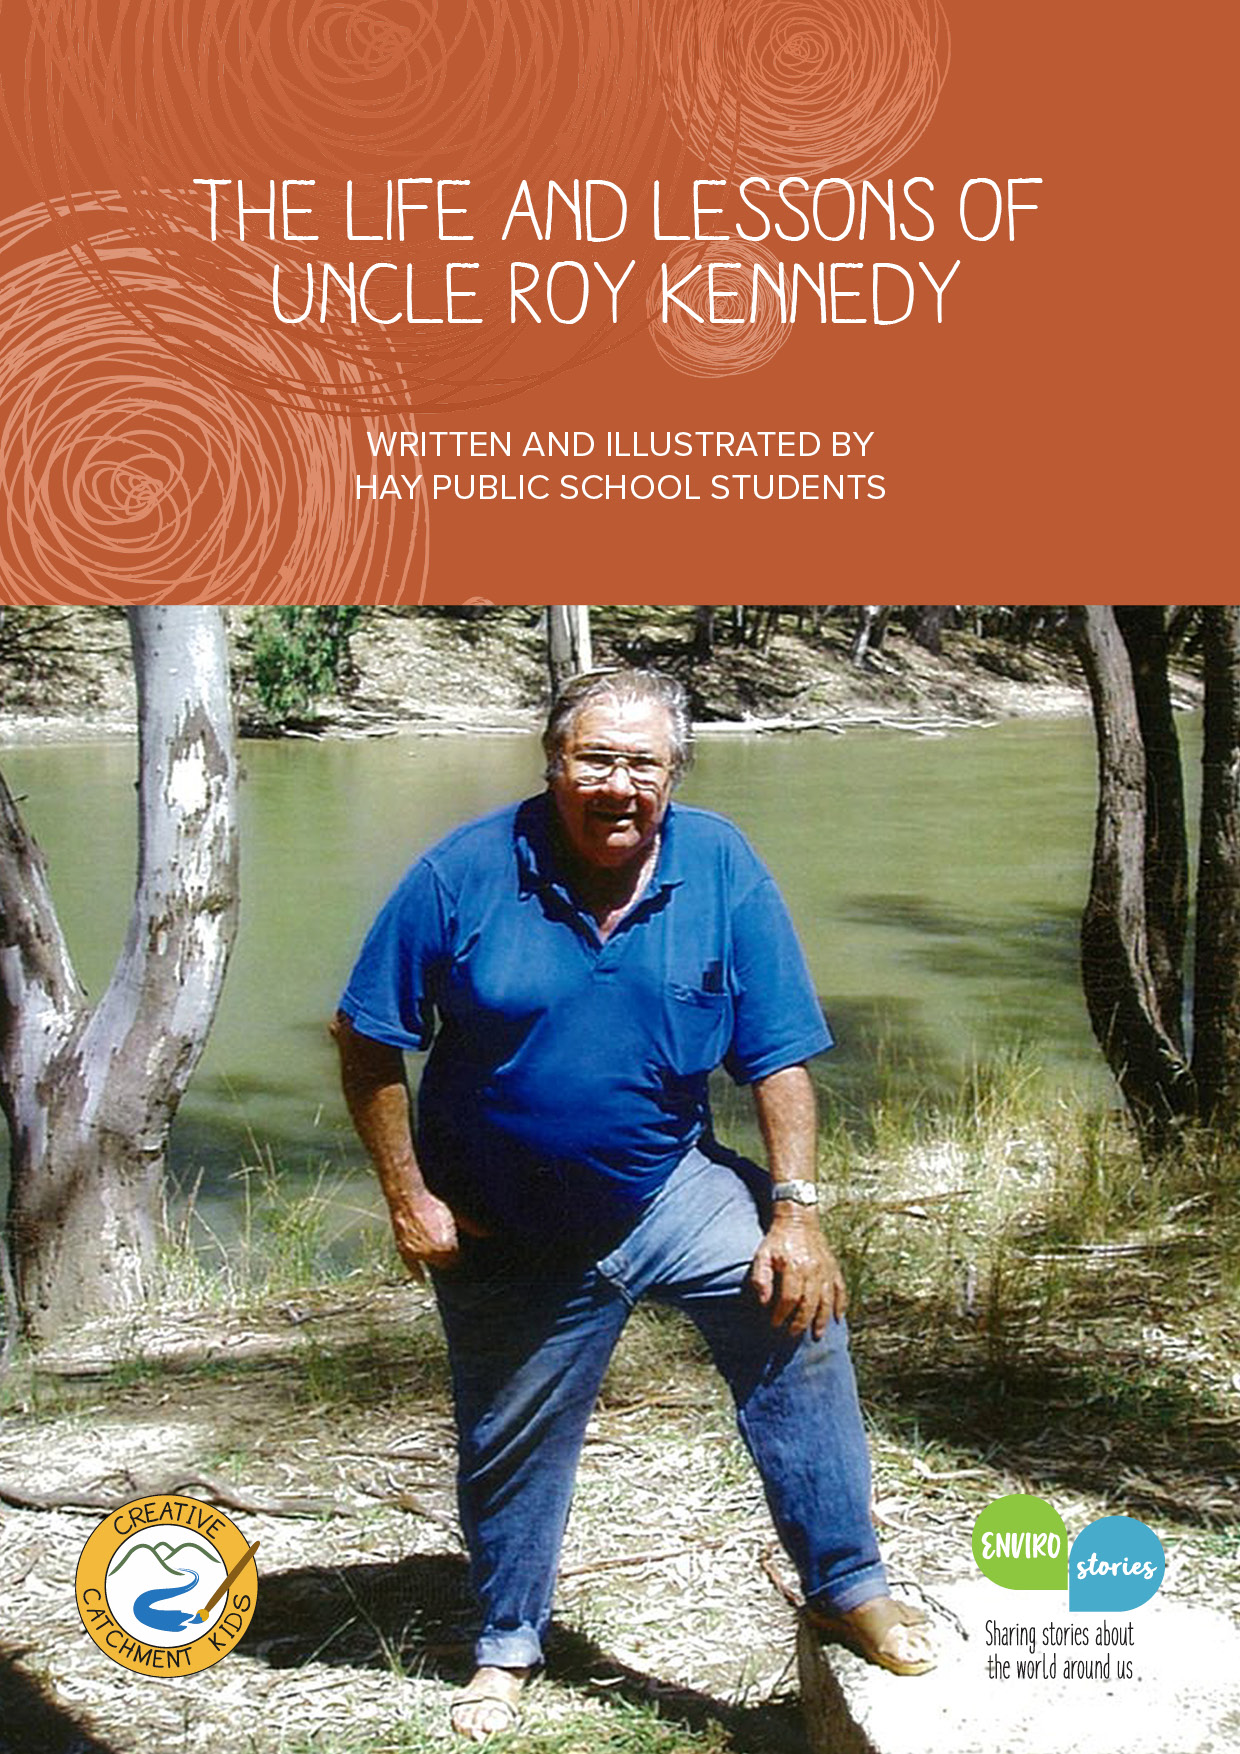 The Life and Lessons of Uncle Roy Kennedy